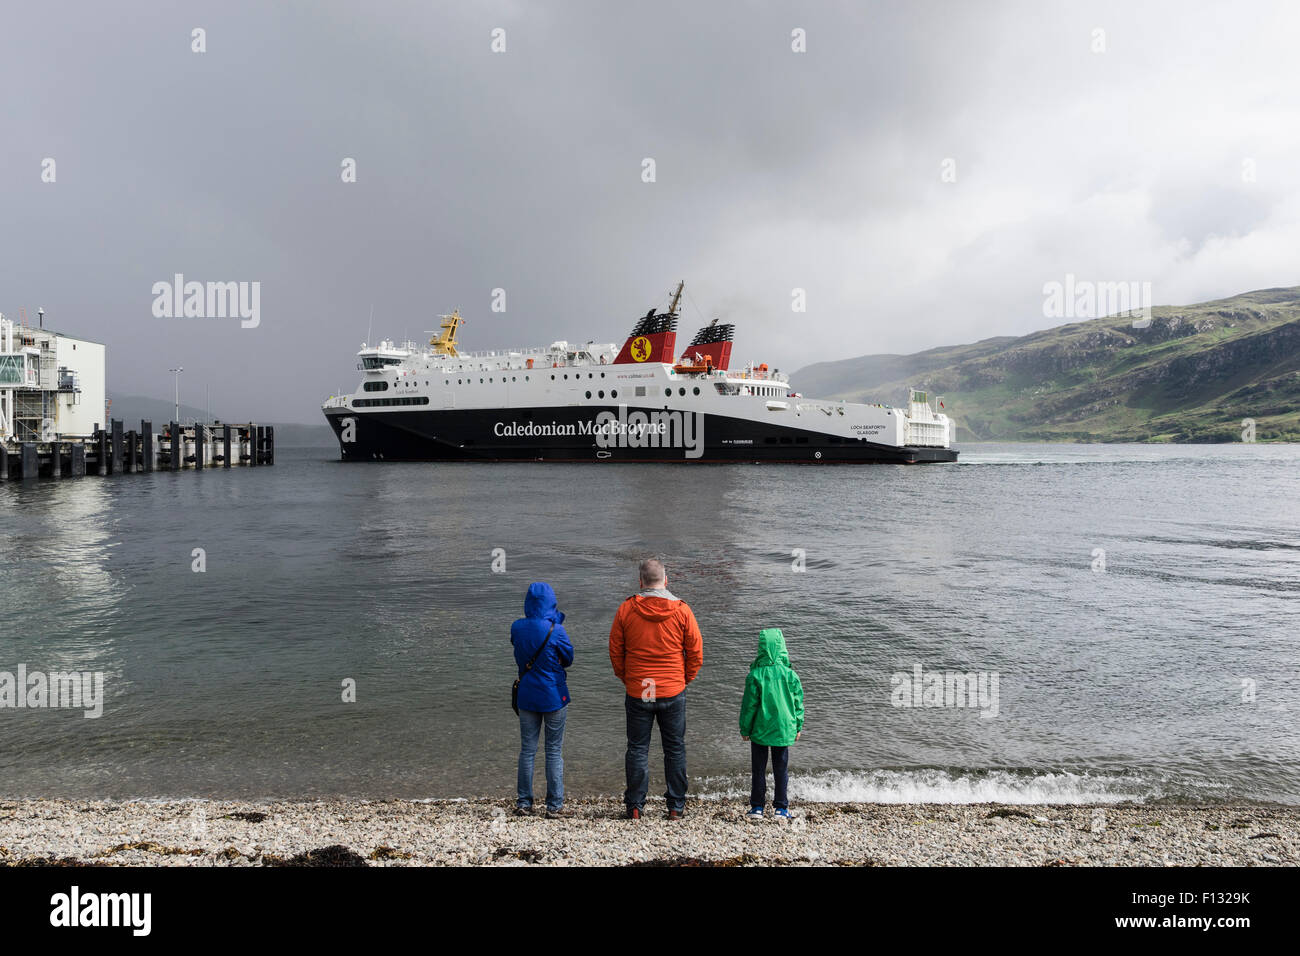 Caledonian Macbrayne ( Calmac) ferry from Stornaway on Isle of Lewis in Outer Hebrides approaching Ullapool ferry - Stock Image